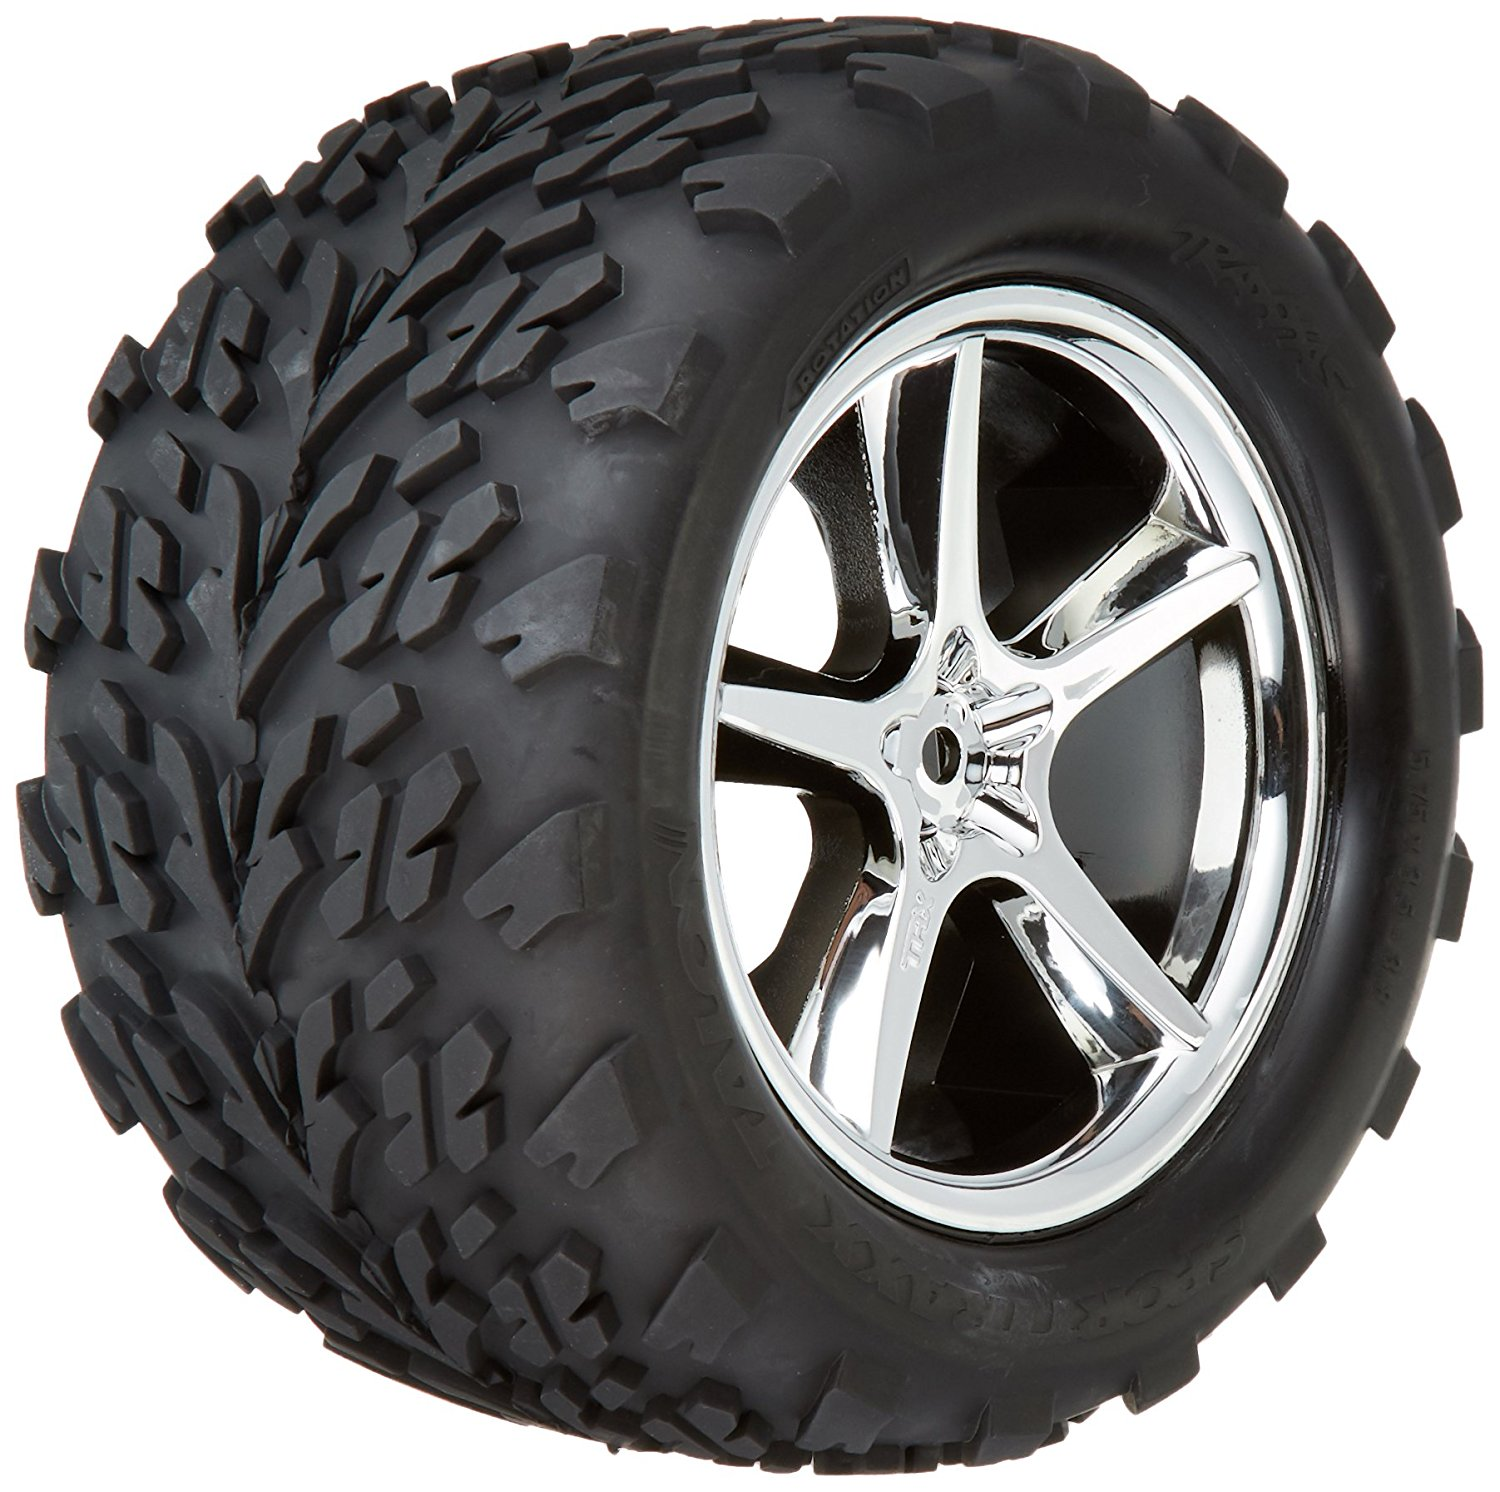 5374 Talon Tires Pre-Glued on Gemini Chrome Wheels (pair), The number one selling name ins... by Traxxas